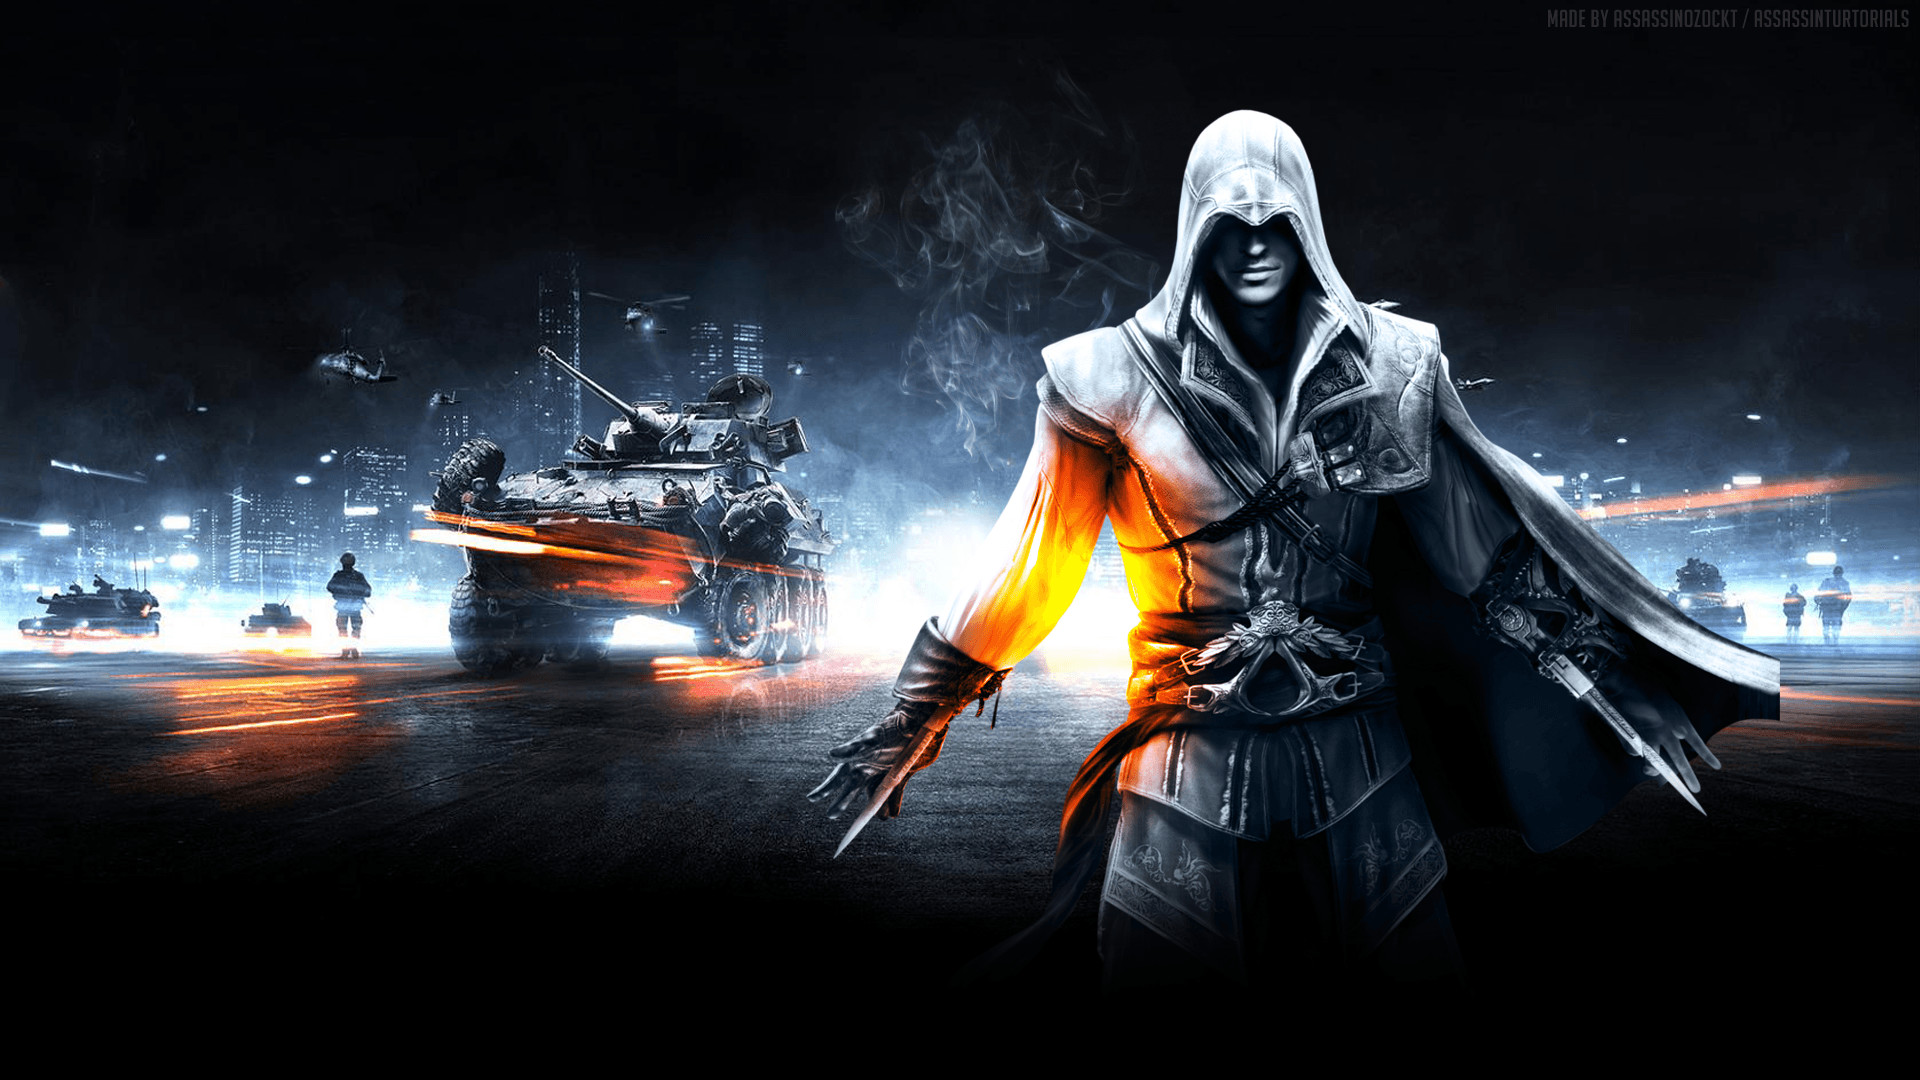 Pc Game Wallpapers Hd 79 Images